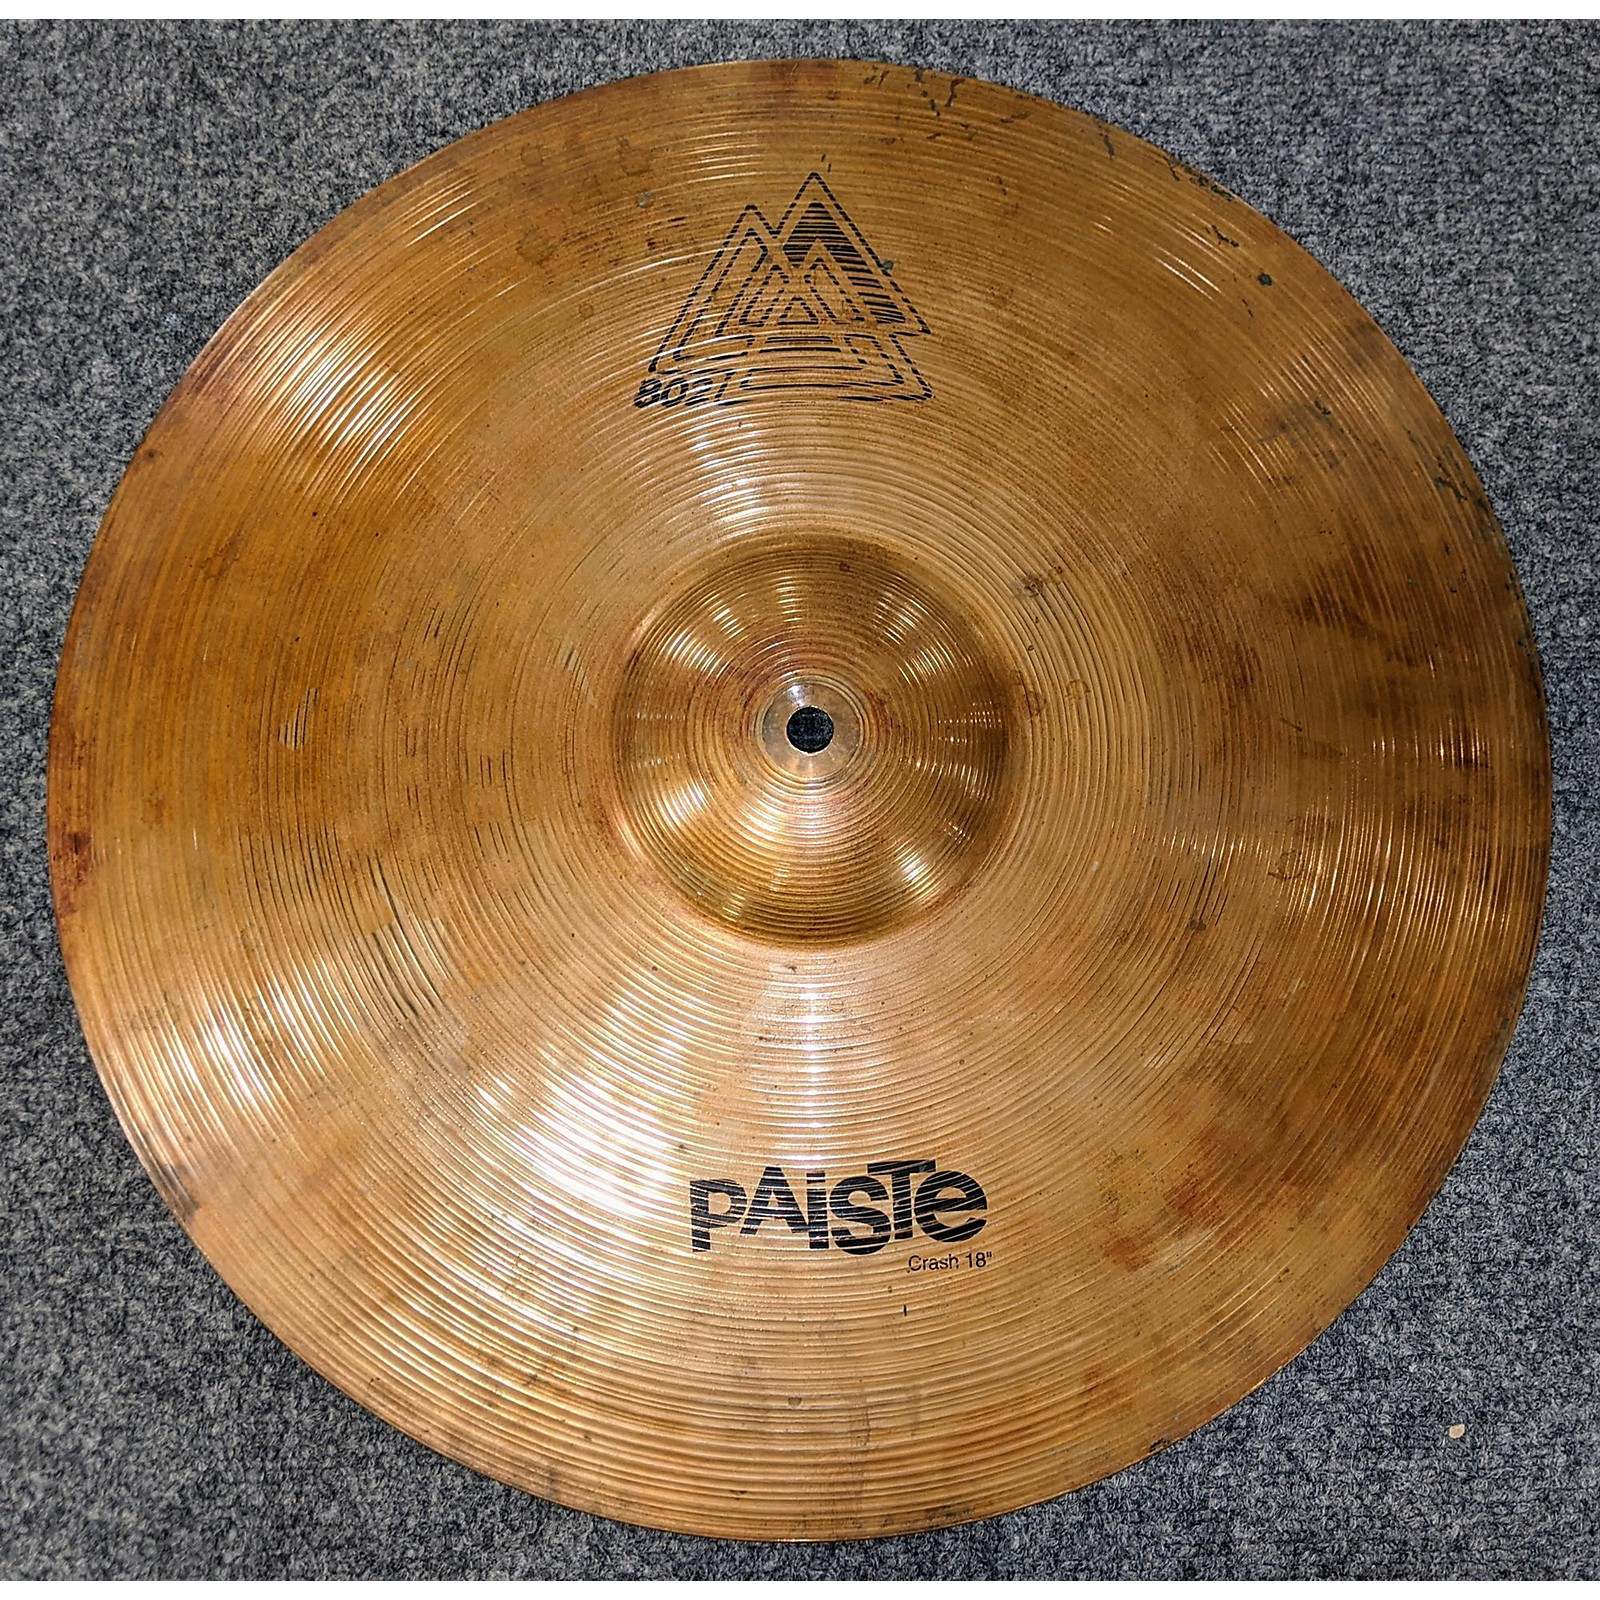 Paiste 18in 802 Crash 18 Cymbal